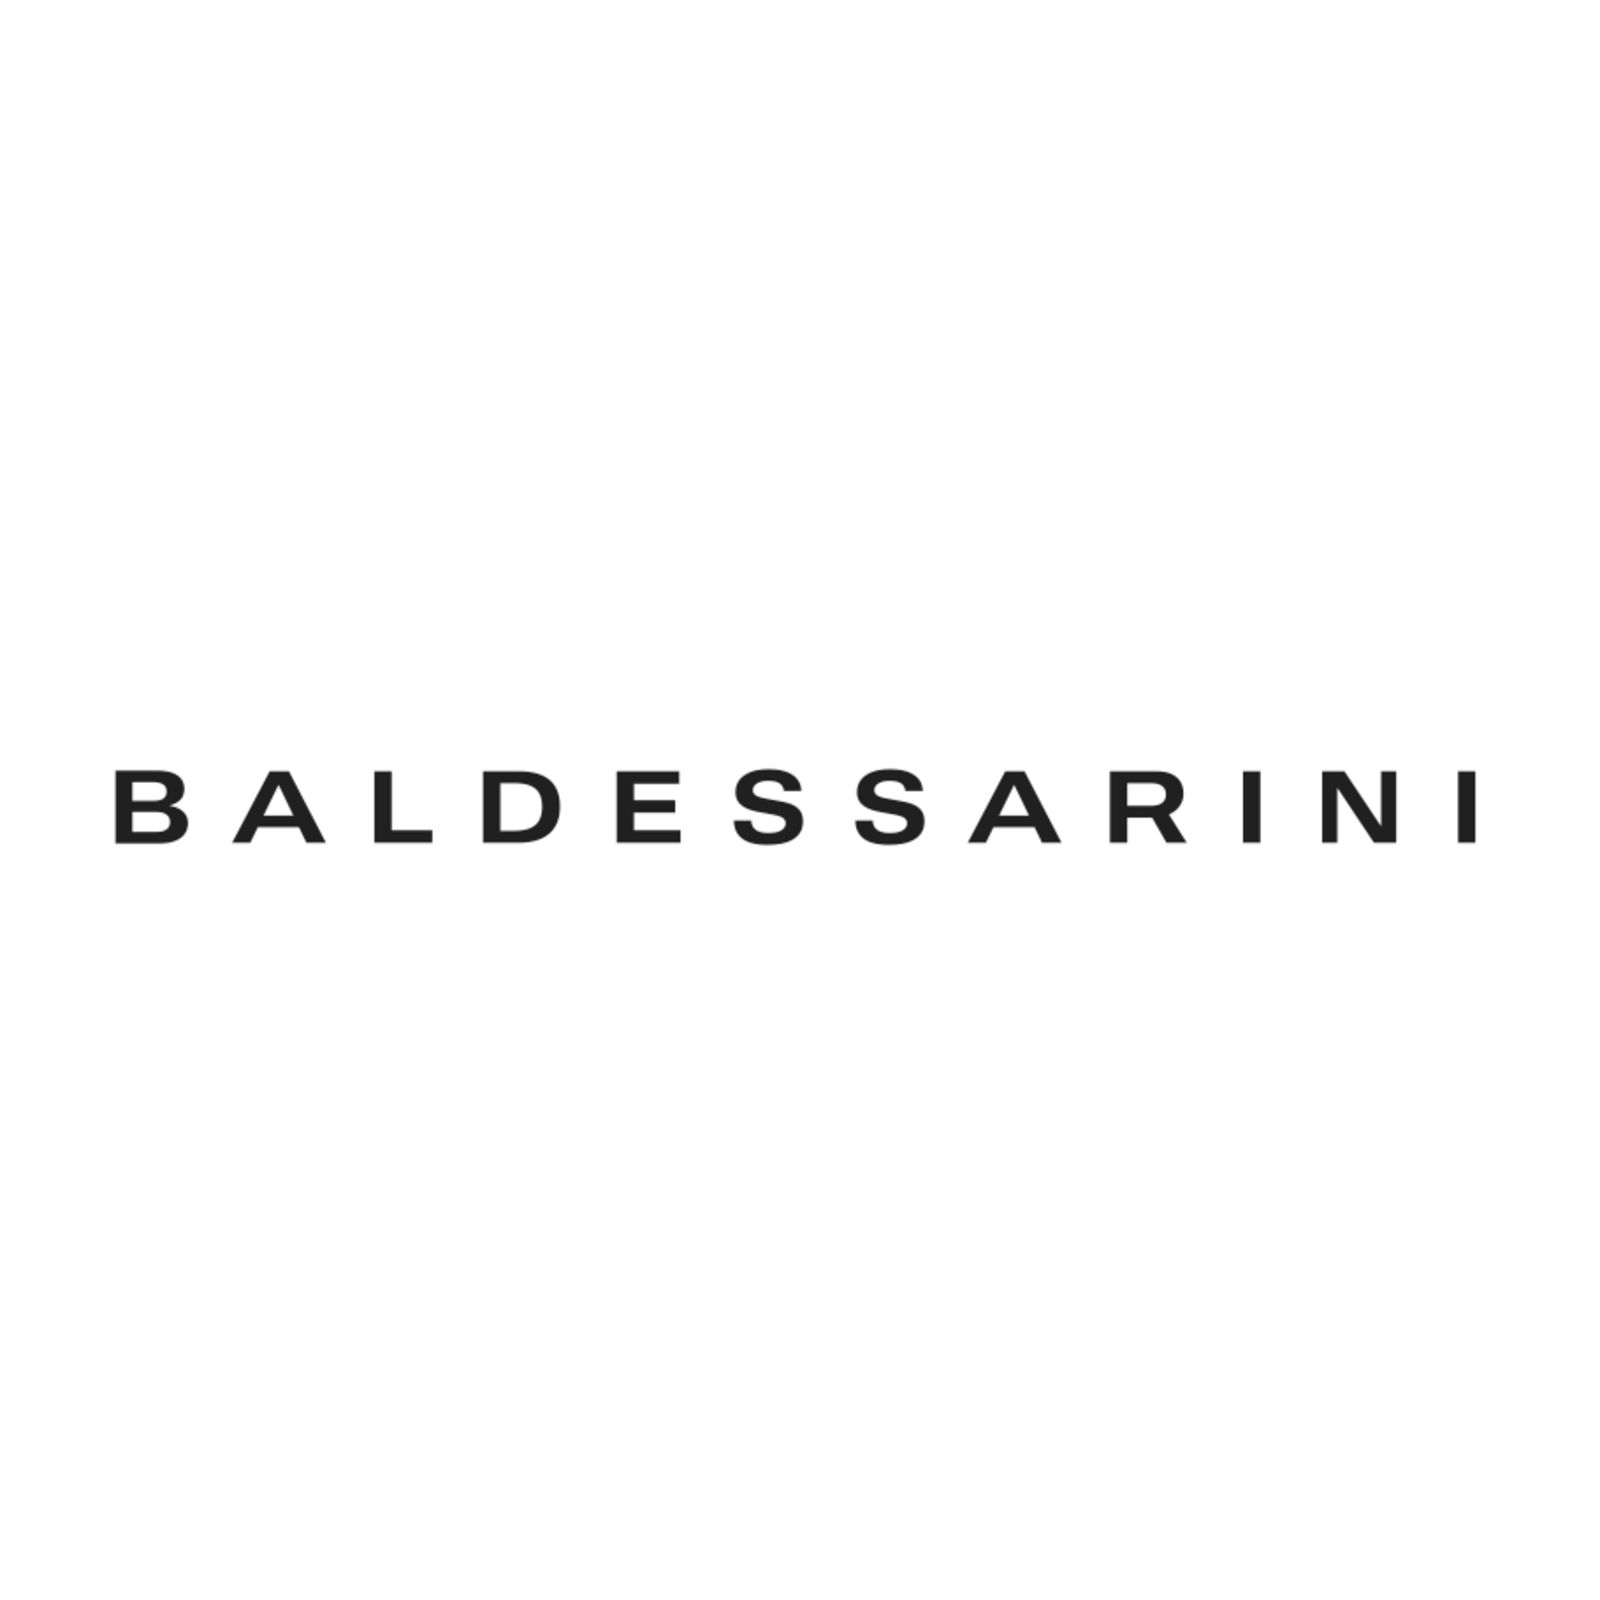 BALDESSARINI JEWELRY